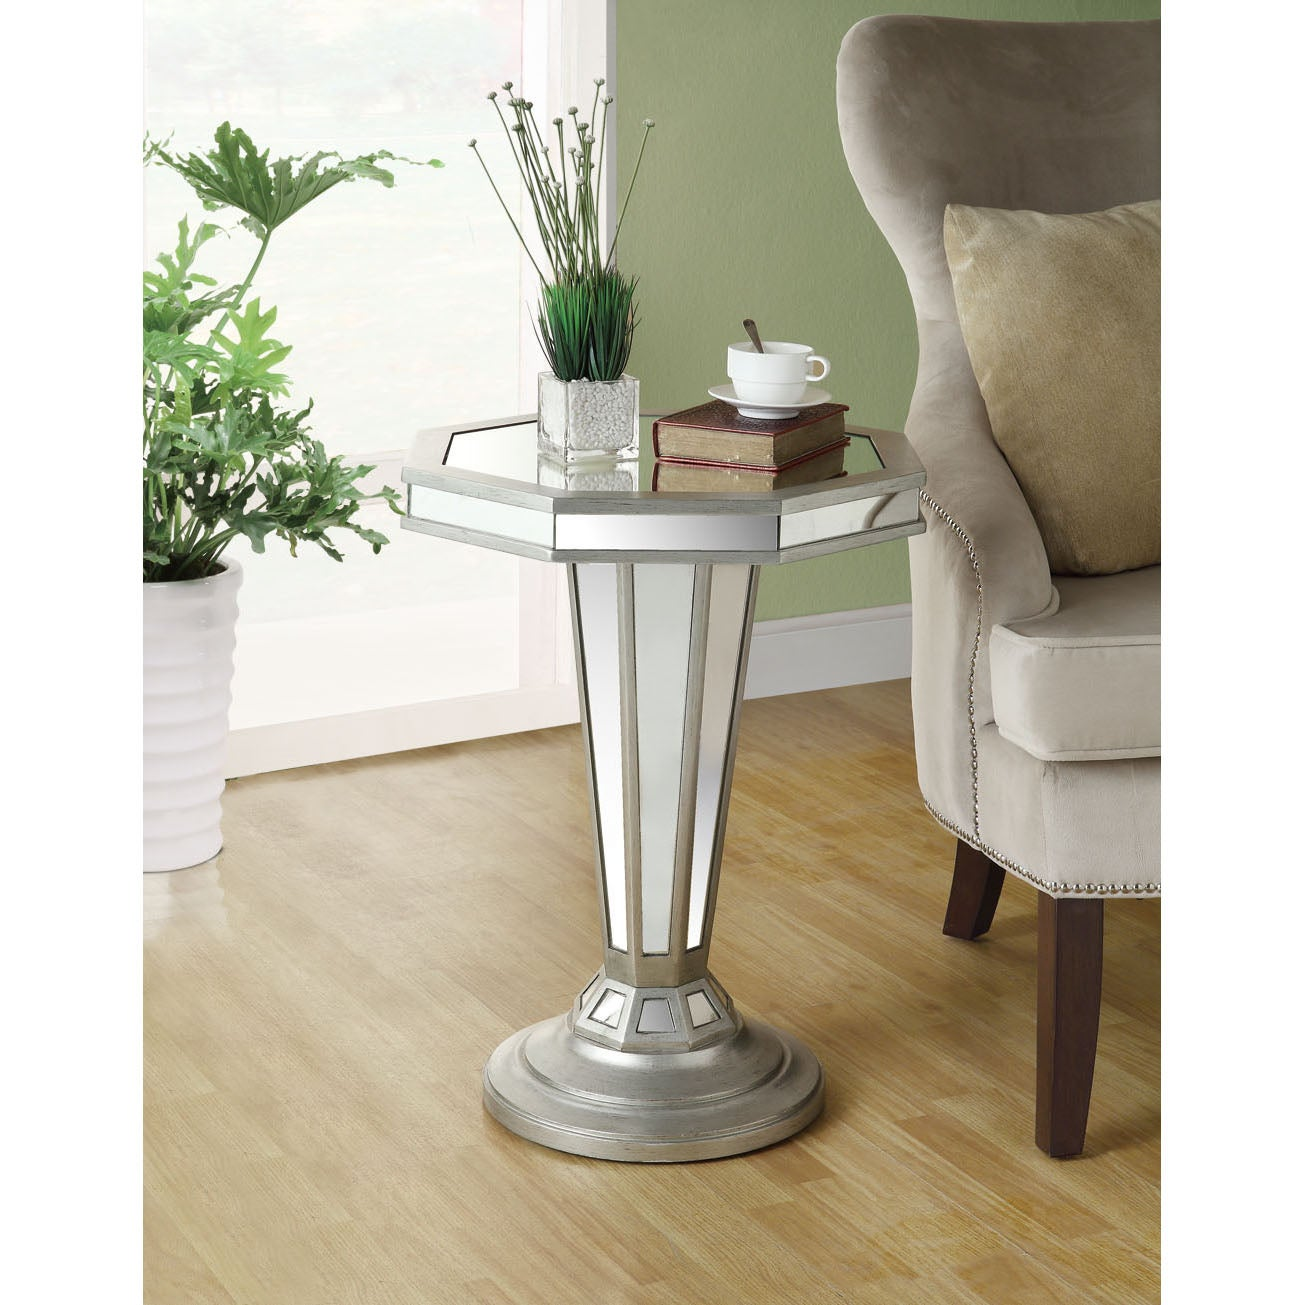 Mirrored 22-inch Octagon Shape Pedestal Accent Table